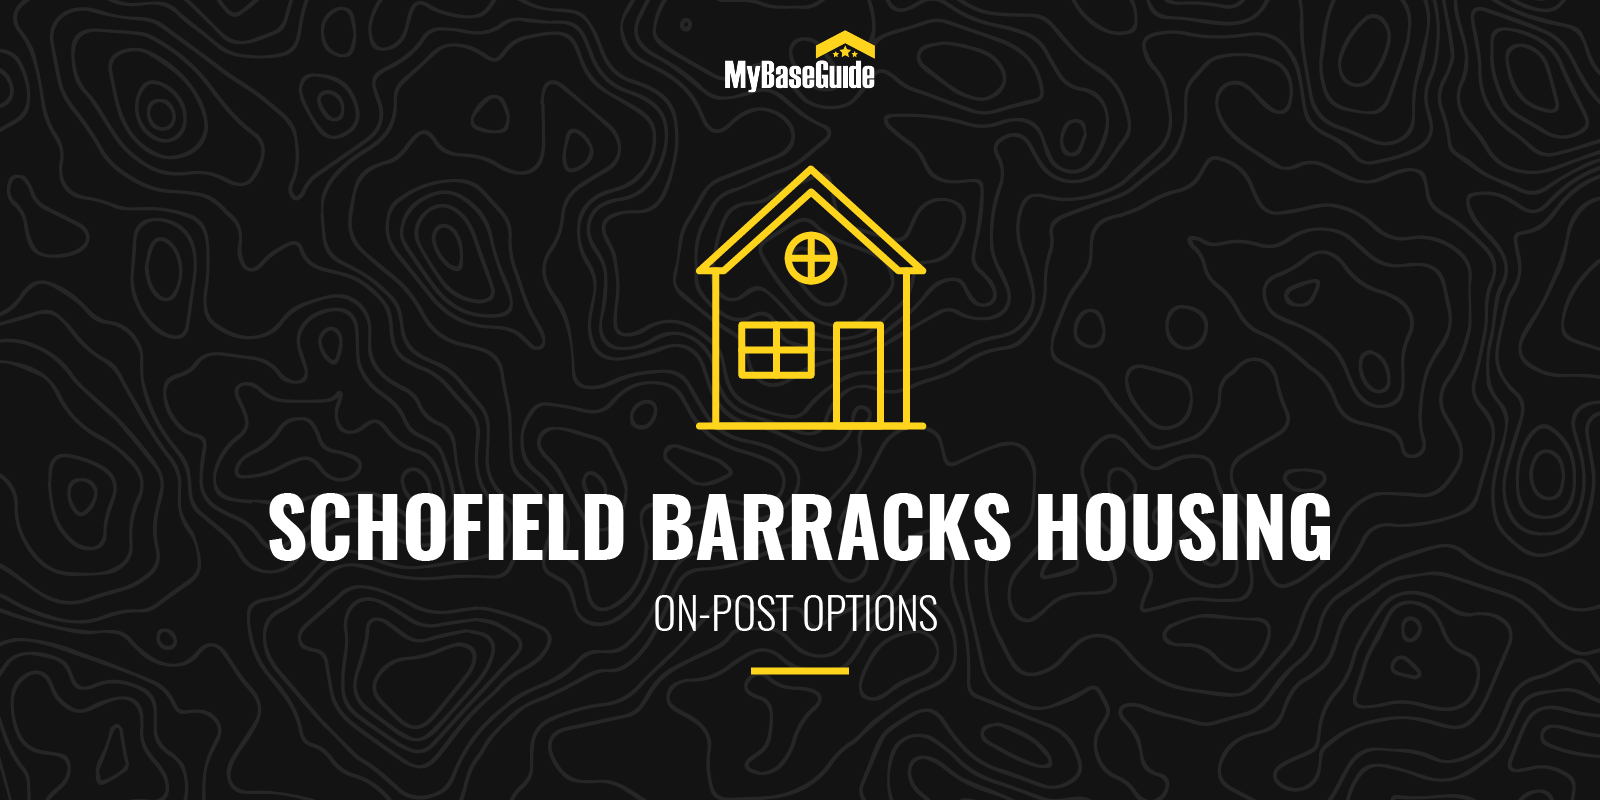 Schofield Barracks On-Post Housing Options